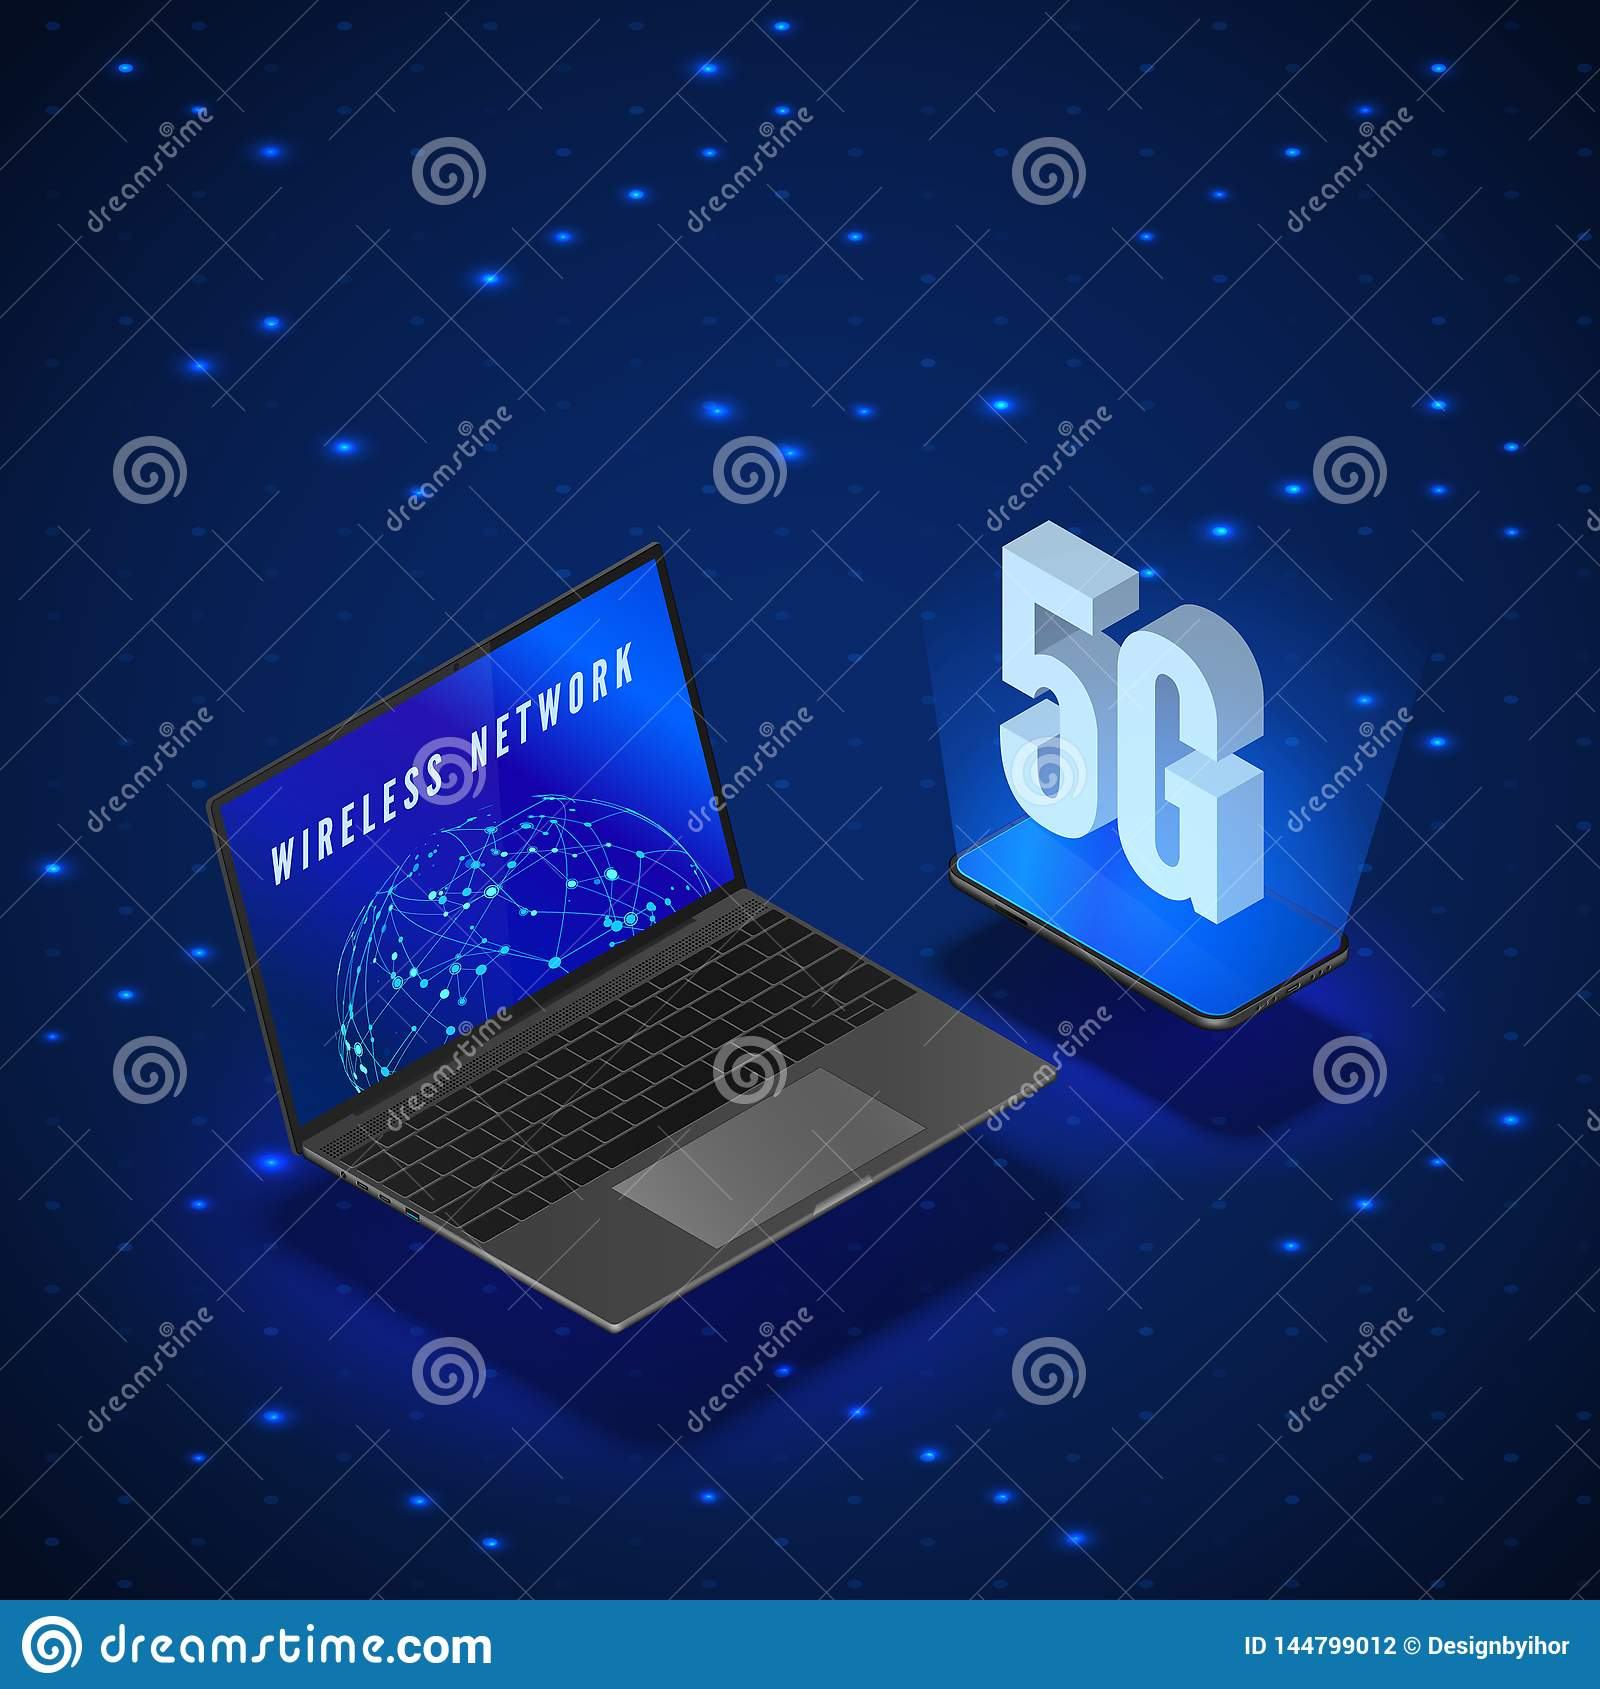 5G Wireless Network Systems. Mobile Internet Technology. Laptop and Phone Isometric Banner 5G Network Technology. Vector